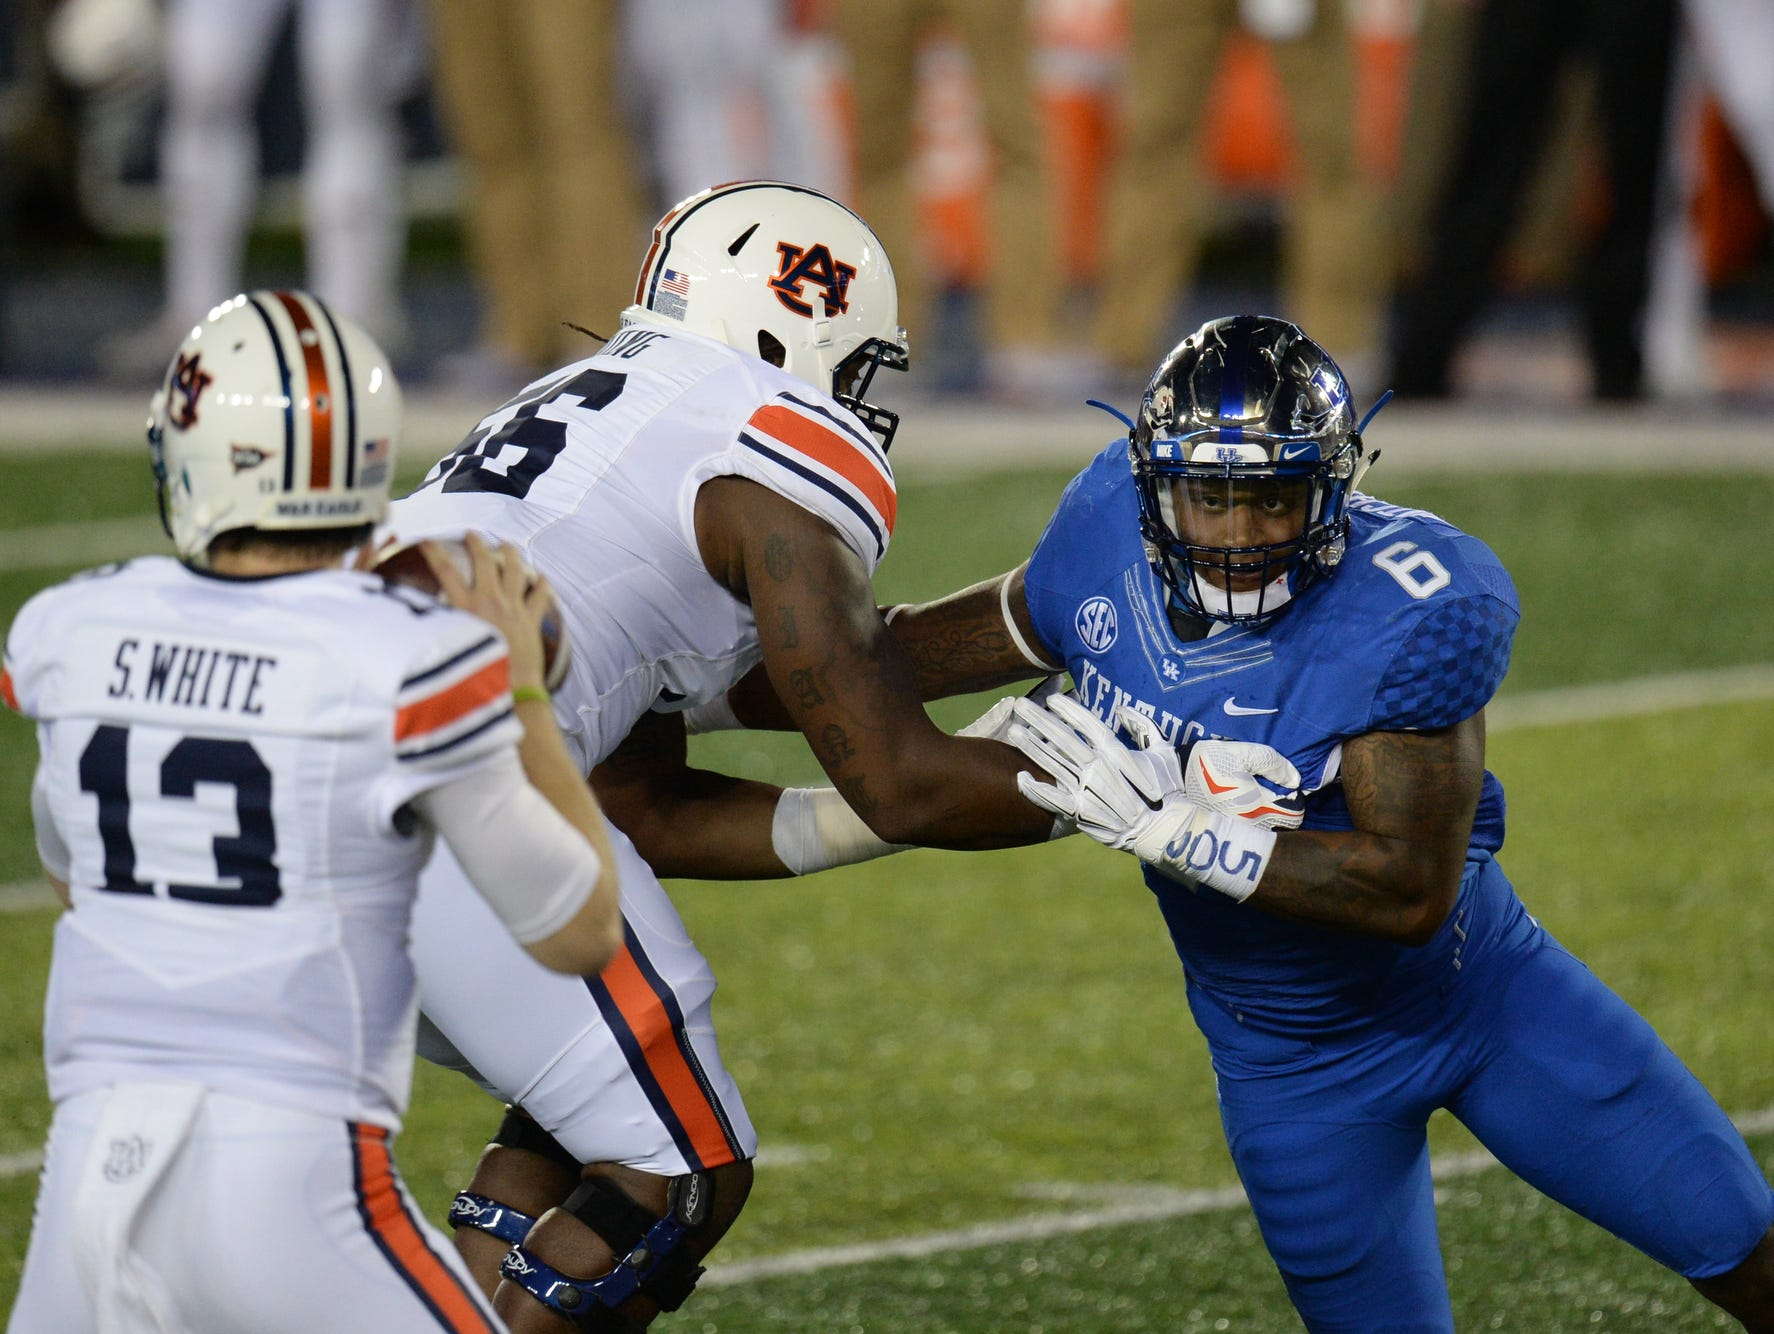 UK DE Jason Hatcher puts on the pressure during the first half of the University of Kentucky - Auburn football game at Commonwealth Stadium in Lexington, Ky., on Thursday, October 15, 2015.